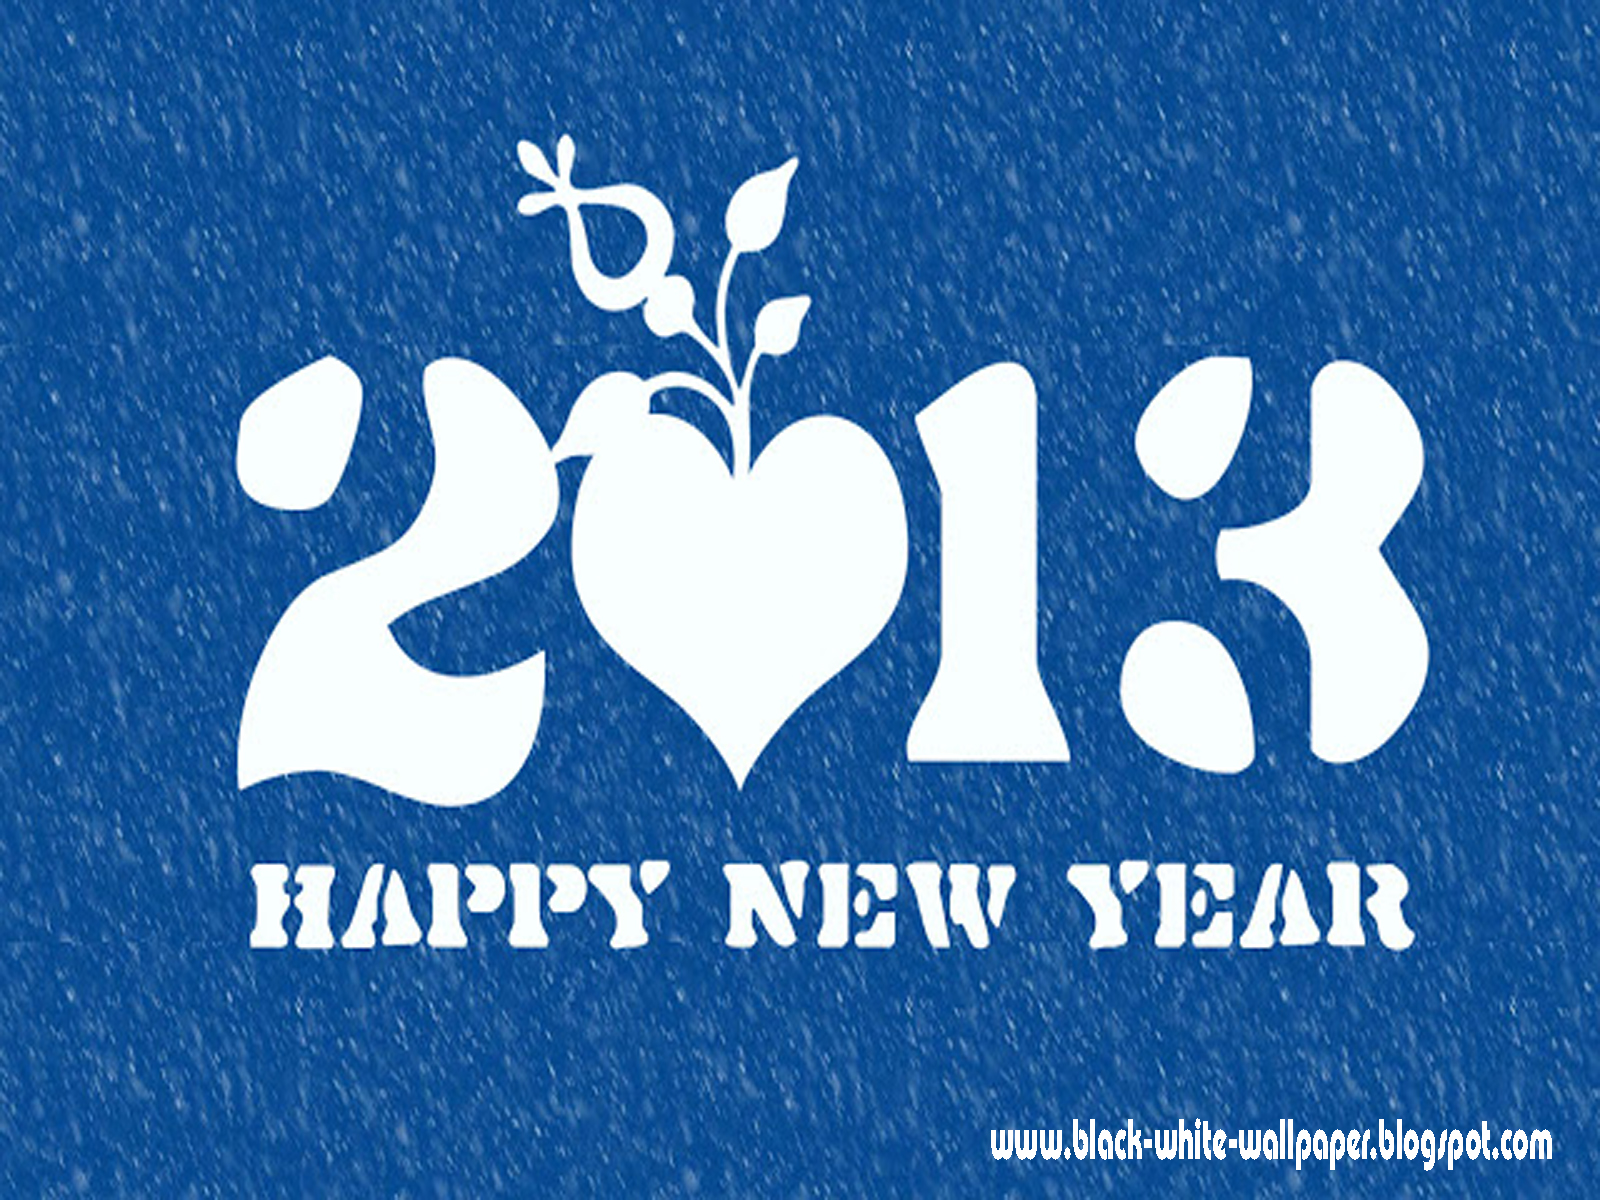 top collection happy new year 2013 high definition wallpaper that is a great happy new year 2013 hd wallpaper simple blue 2013 happy new year wallpaper is